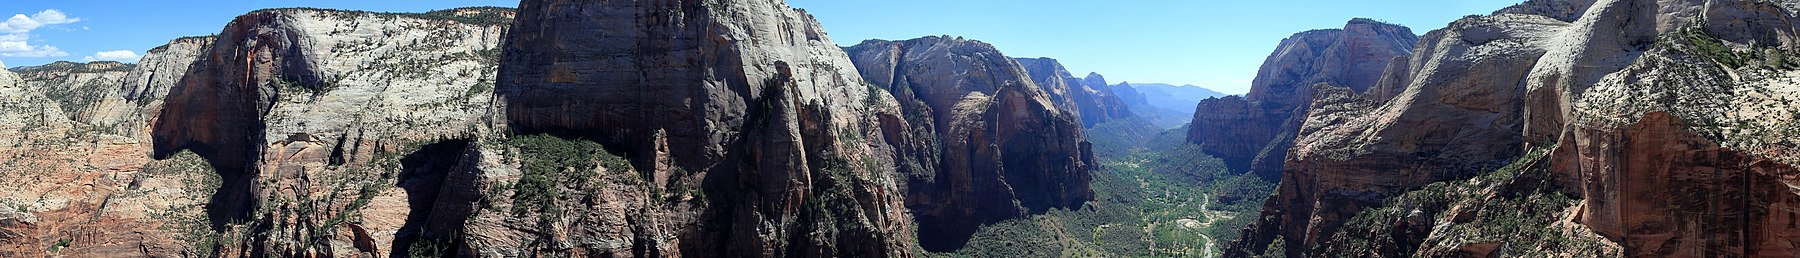 Zion National Park Wikivoyage banner.jpg